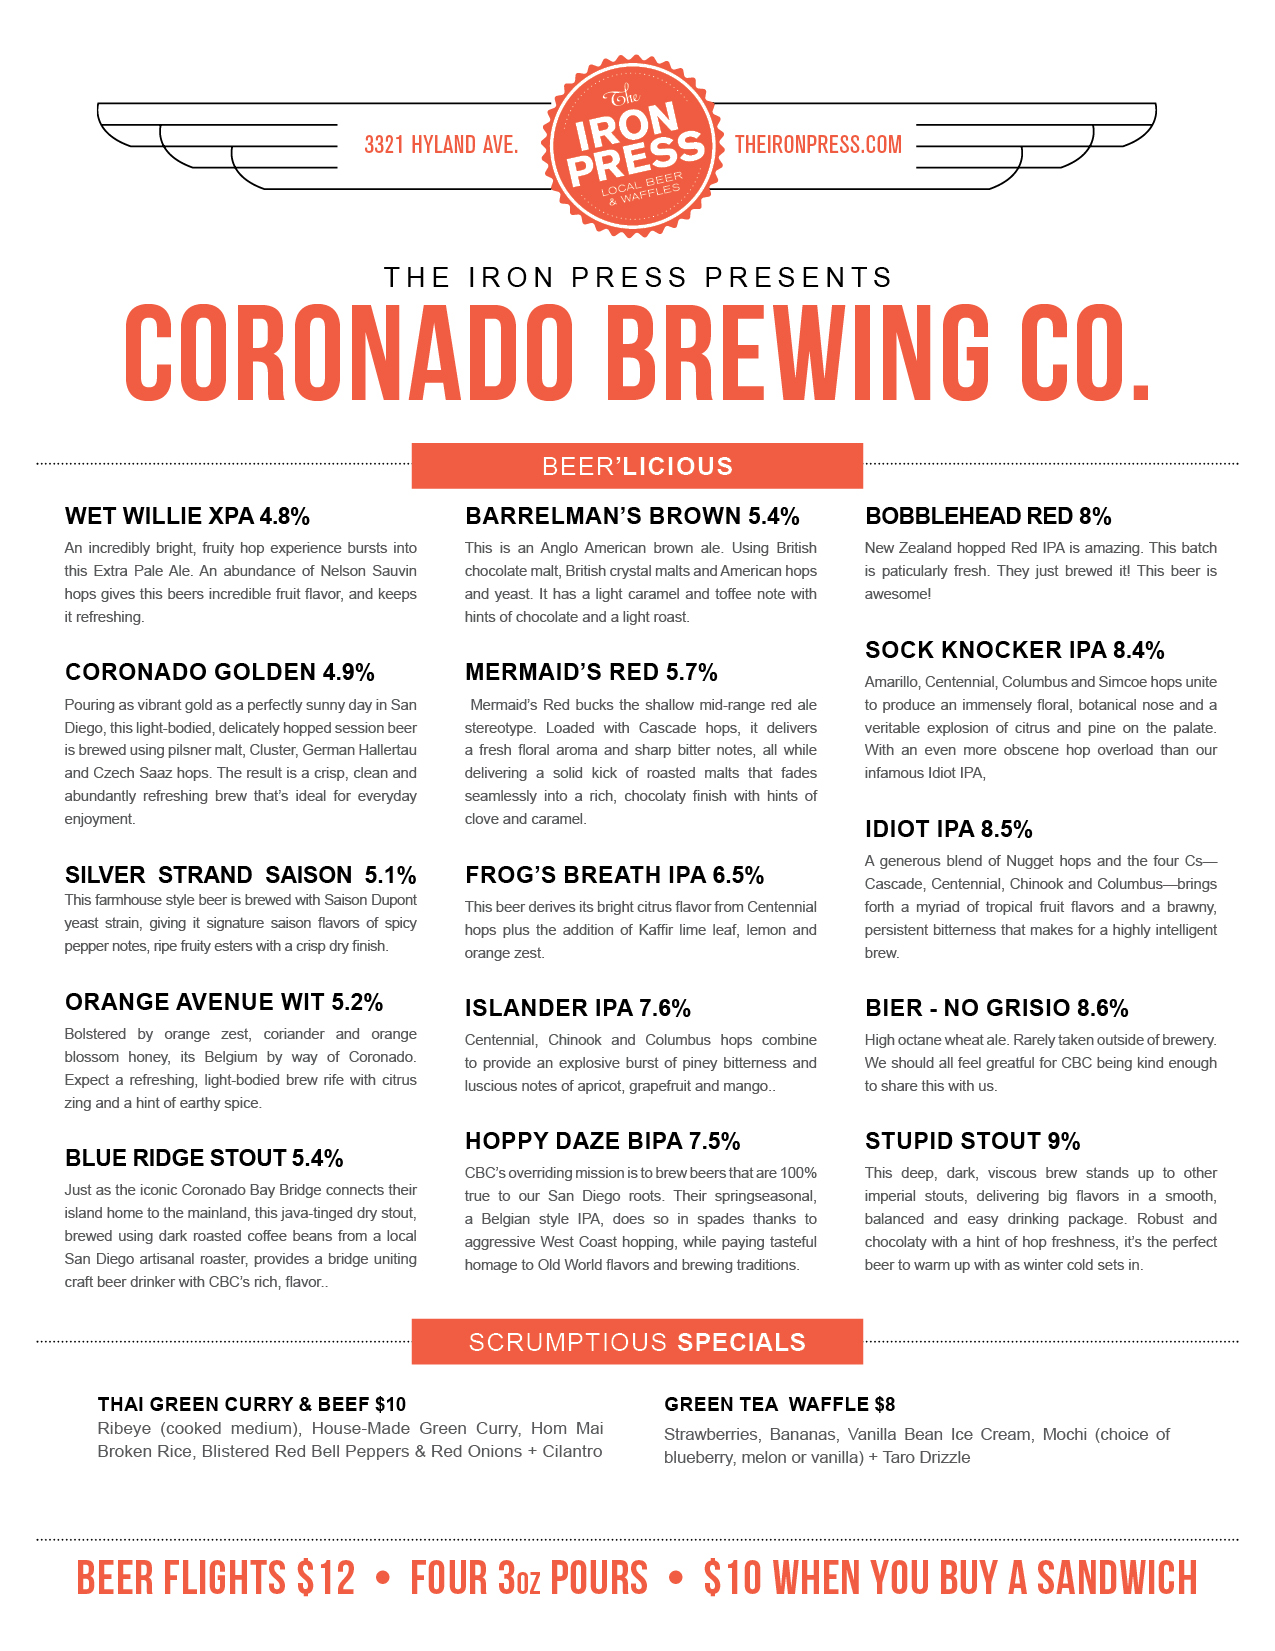 Coronado Brewing Company x The Iron Press